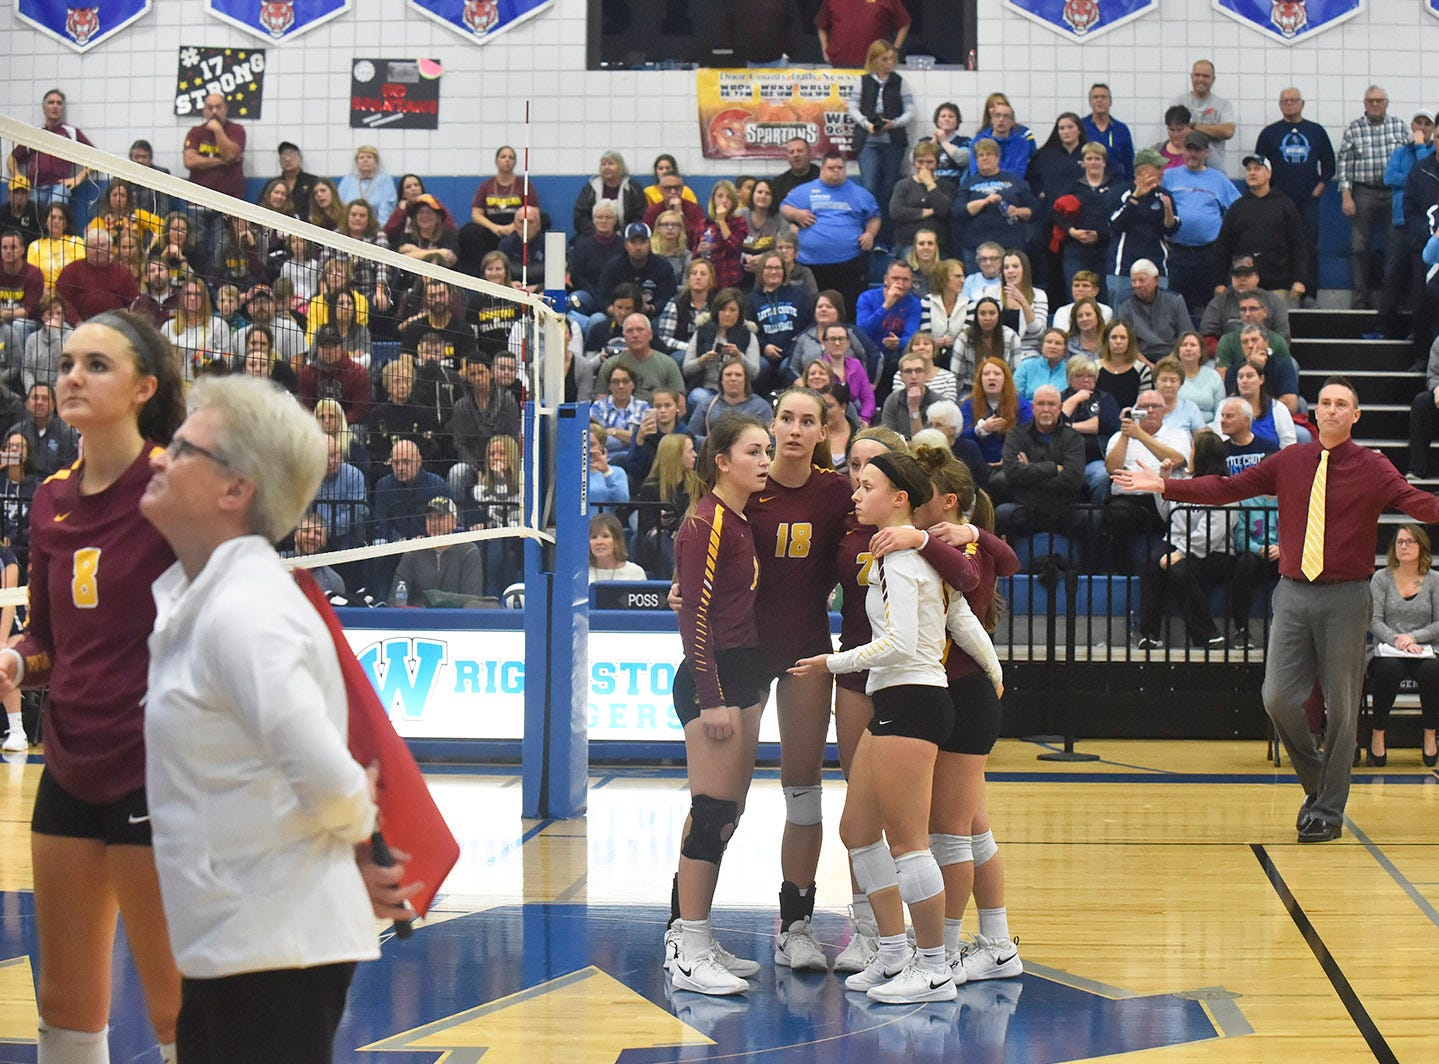 Overturning a call in favor of Luxemburg-Casco at the WIAA Division 2 sectional final against Little Chute on Oct. 27, 2018, in Wrightstown. Tina M. Gohr/USA TODAY NETWORK-Wisconsin